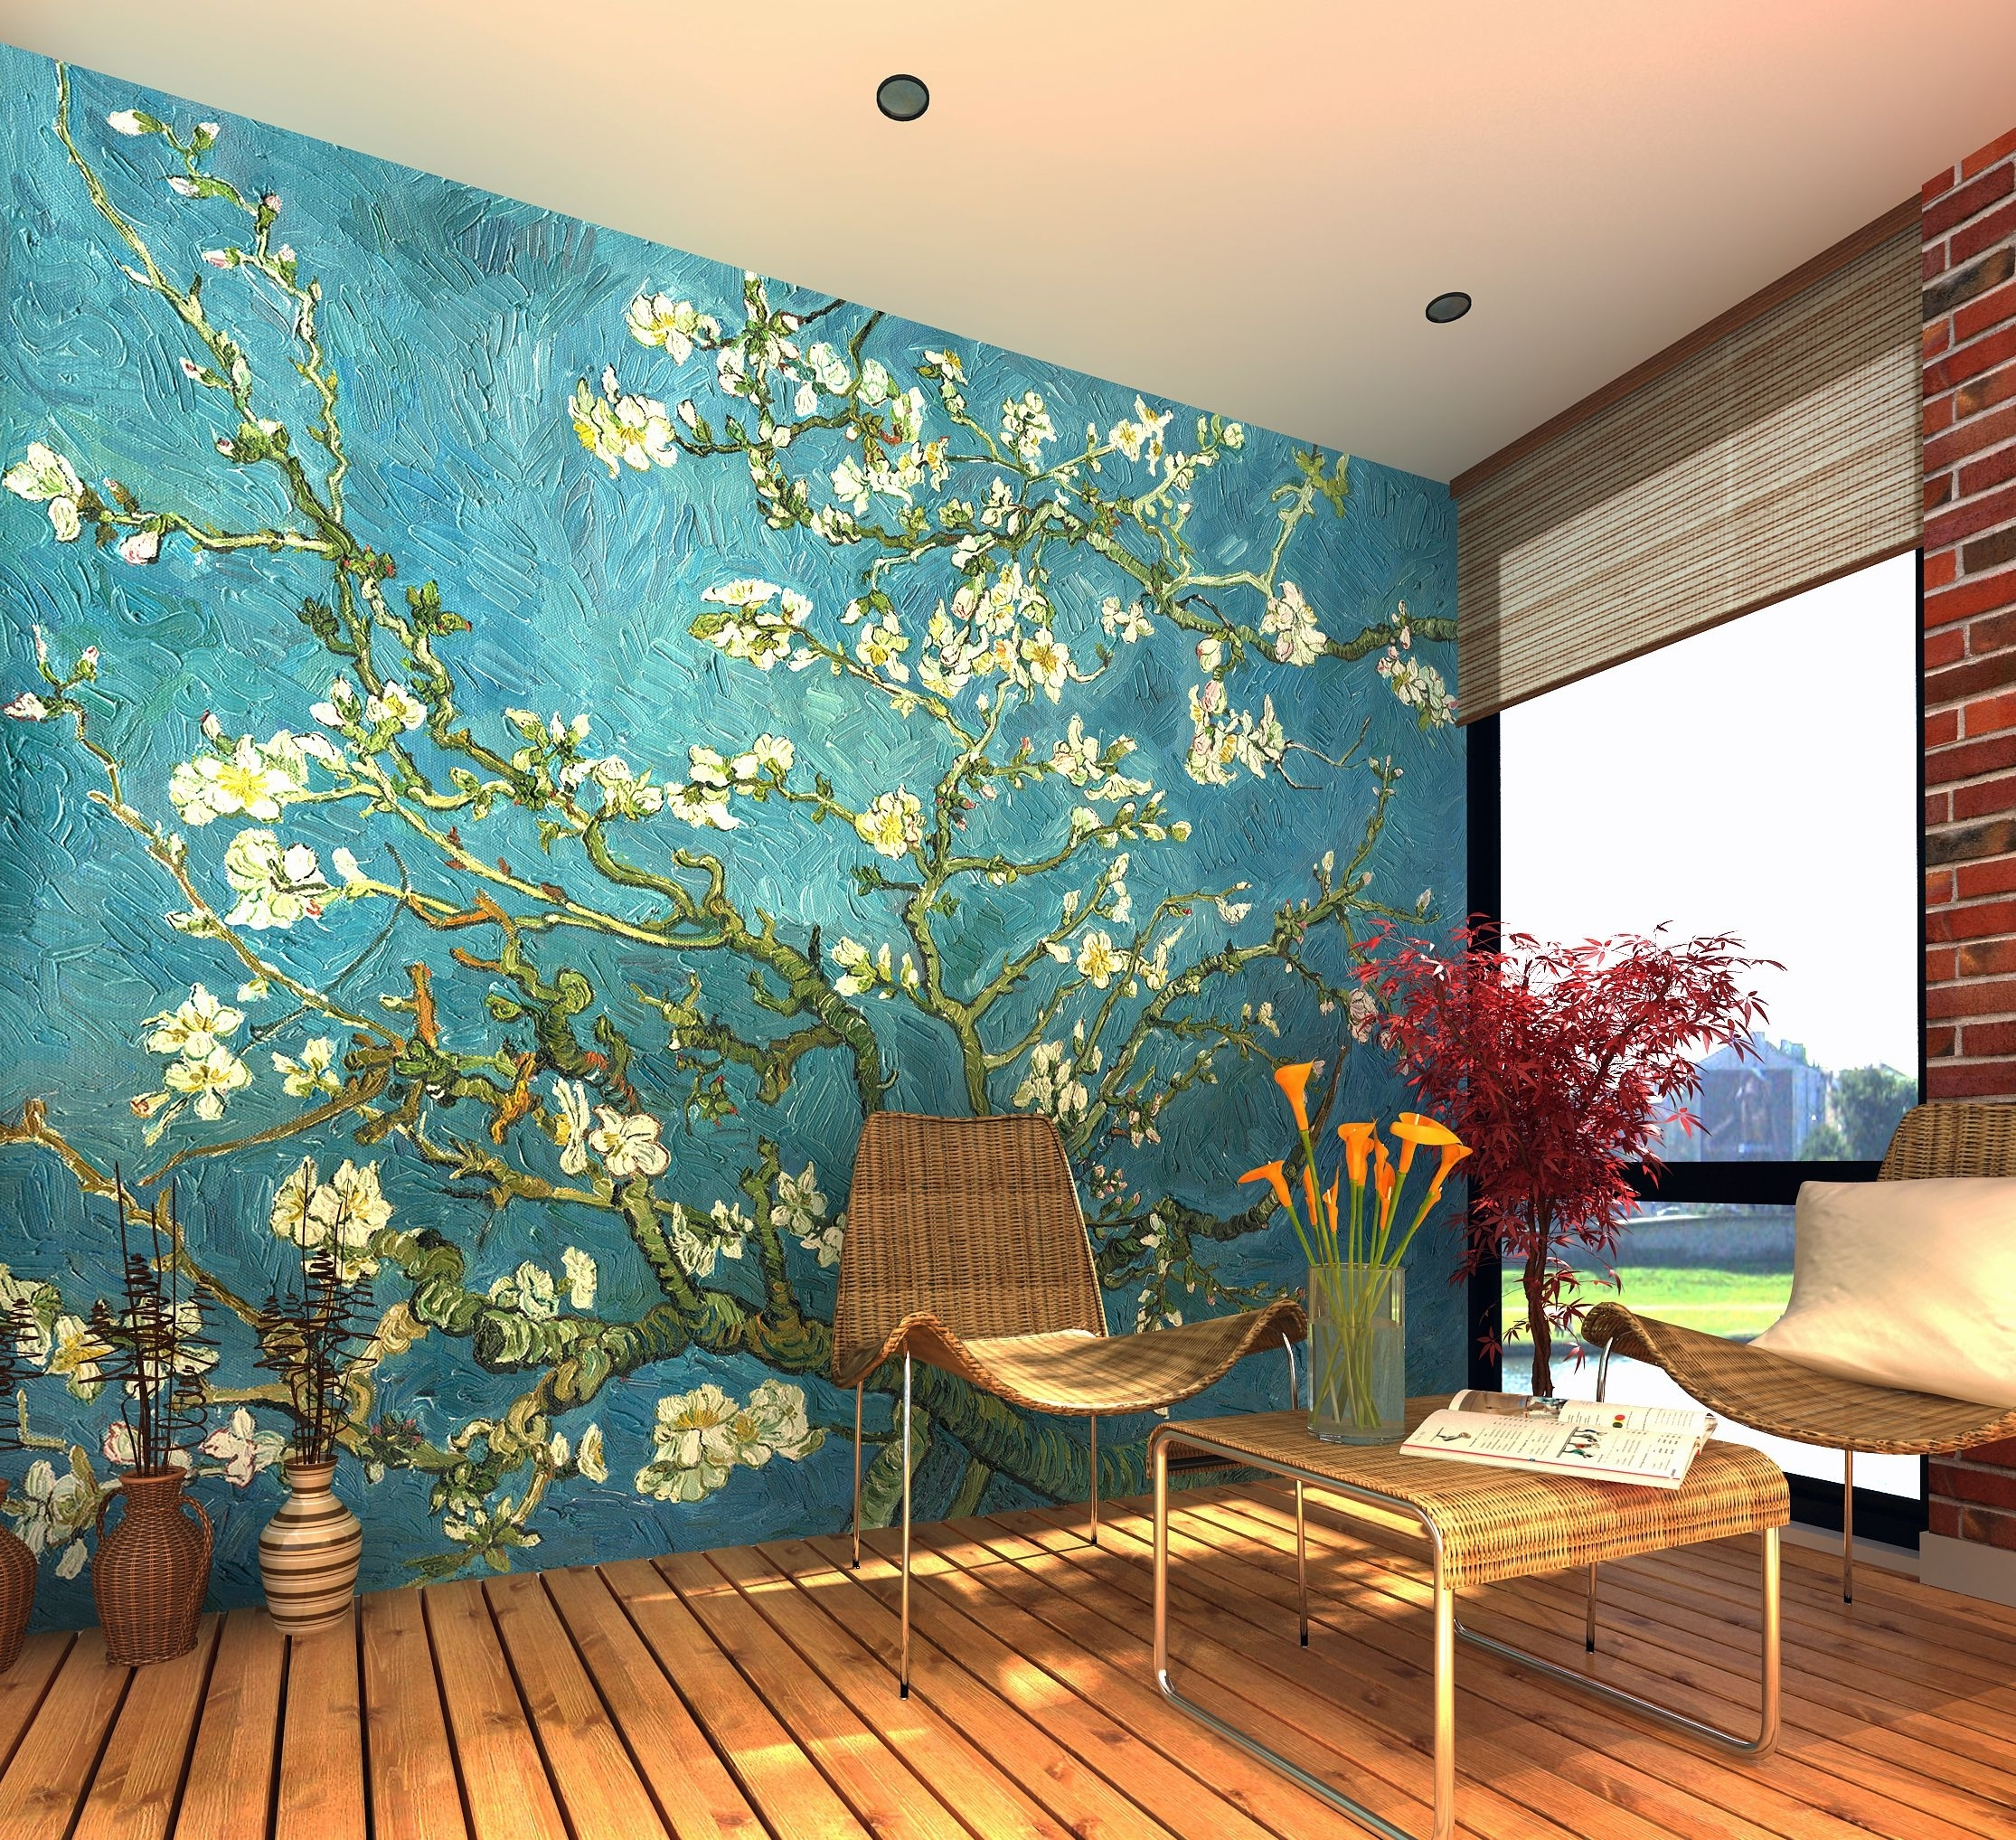 Van Gogh – Almond Blossom – Wall Mural, Wallpaper, Photowall, Home Regarding Most Up To Date Almond Blossoms Vincent Van Gogh Wall Art (Gallery 17 of 20)